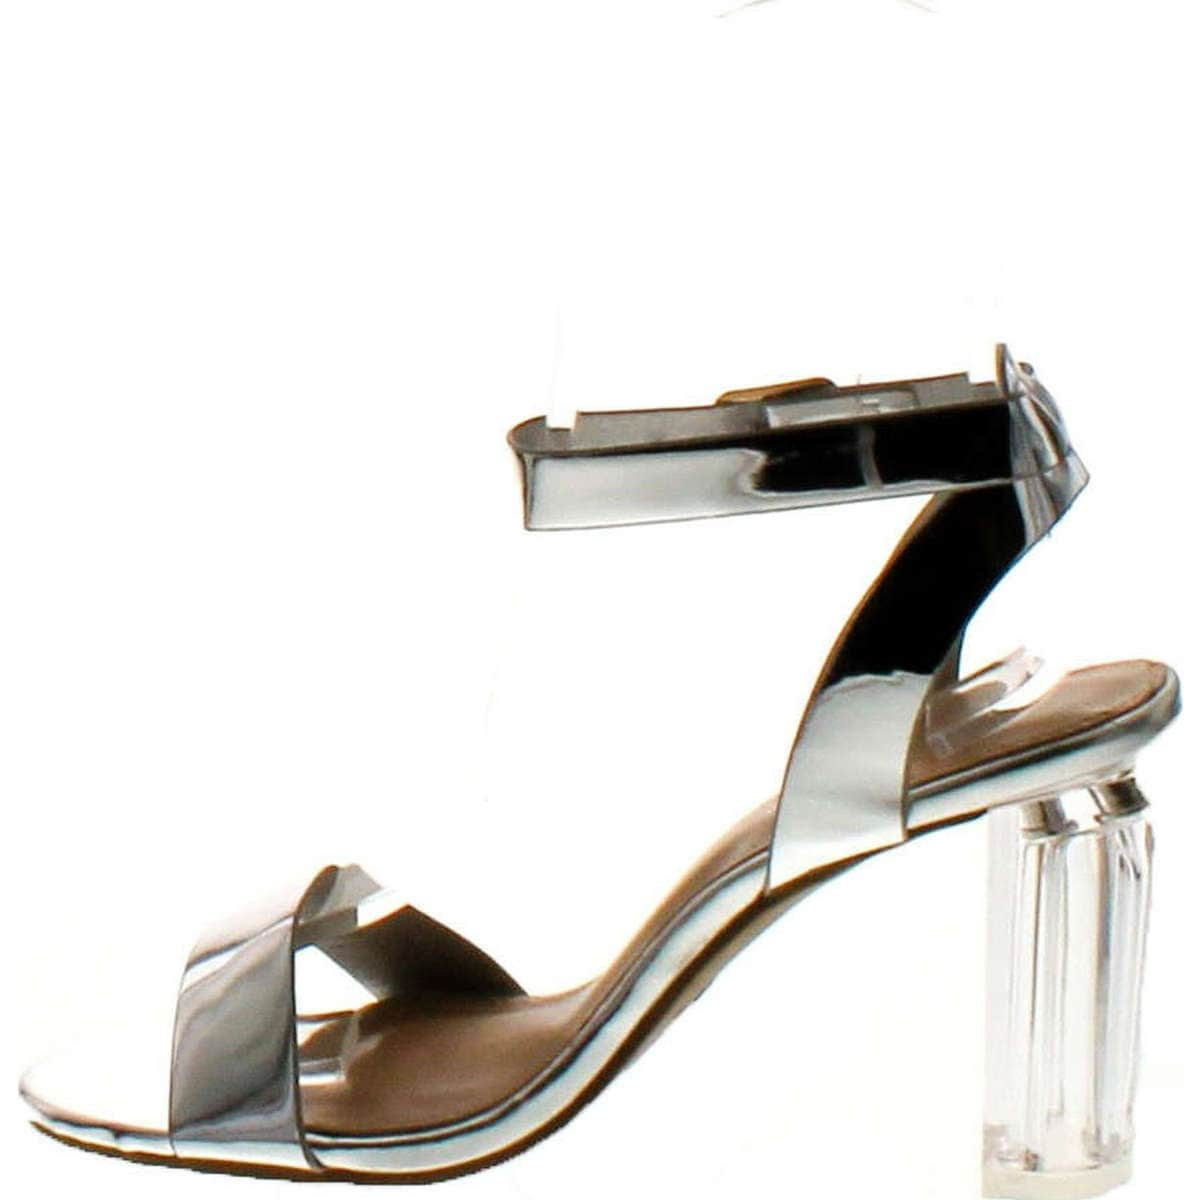 4e5682ac0b3b Shop Top Moda Women s Alma-70 Lucite Clear Strappy Block Chunky High Heel  Open Peep Toe Sandal - Free Shipping On Orders Over  45 - Overstock -  14820228